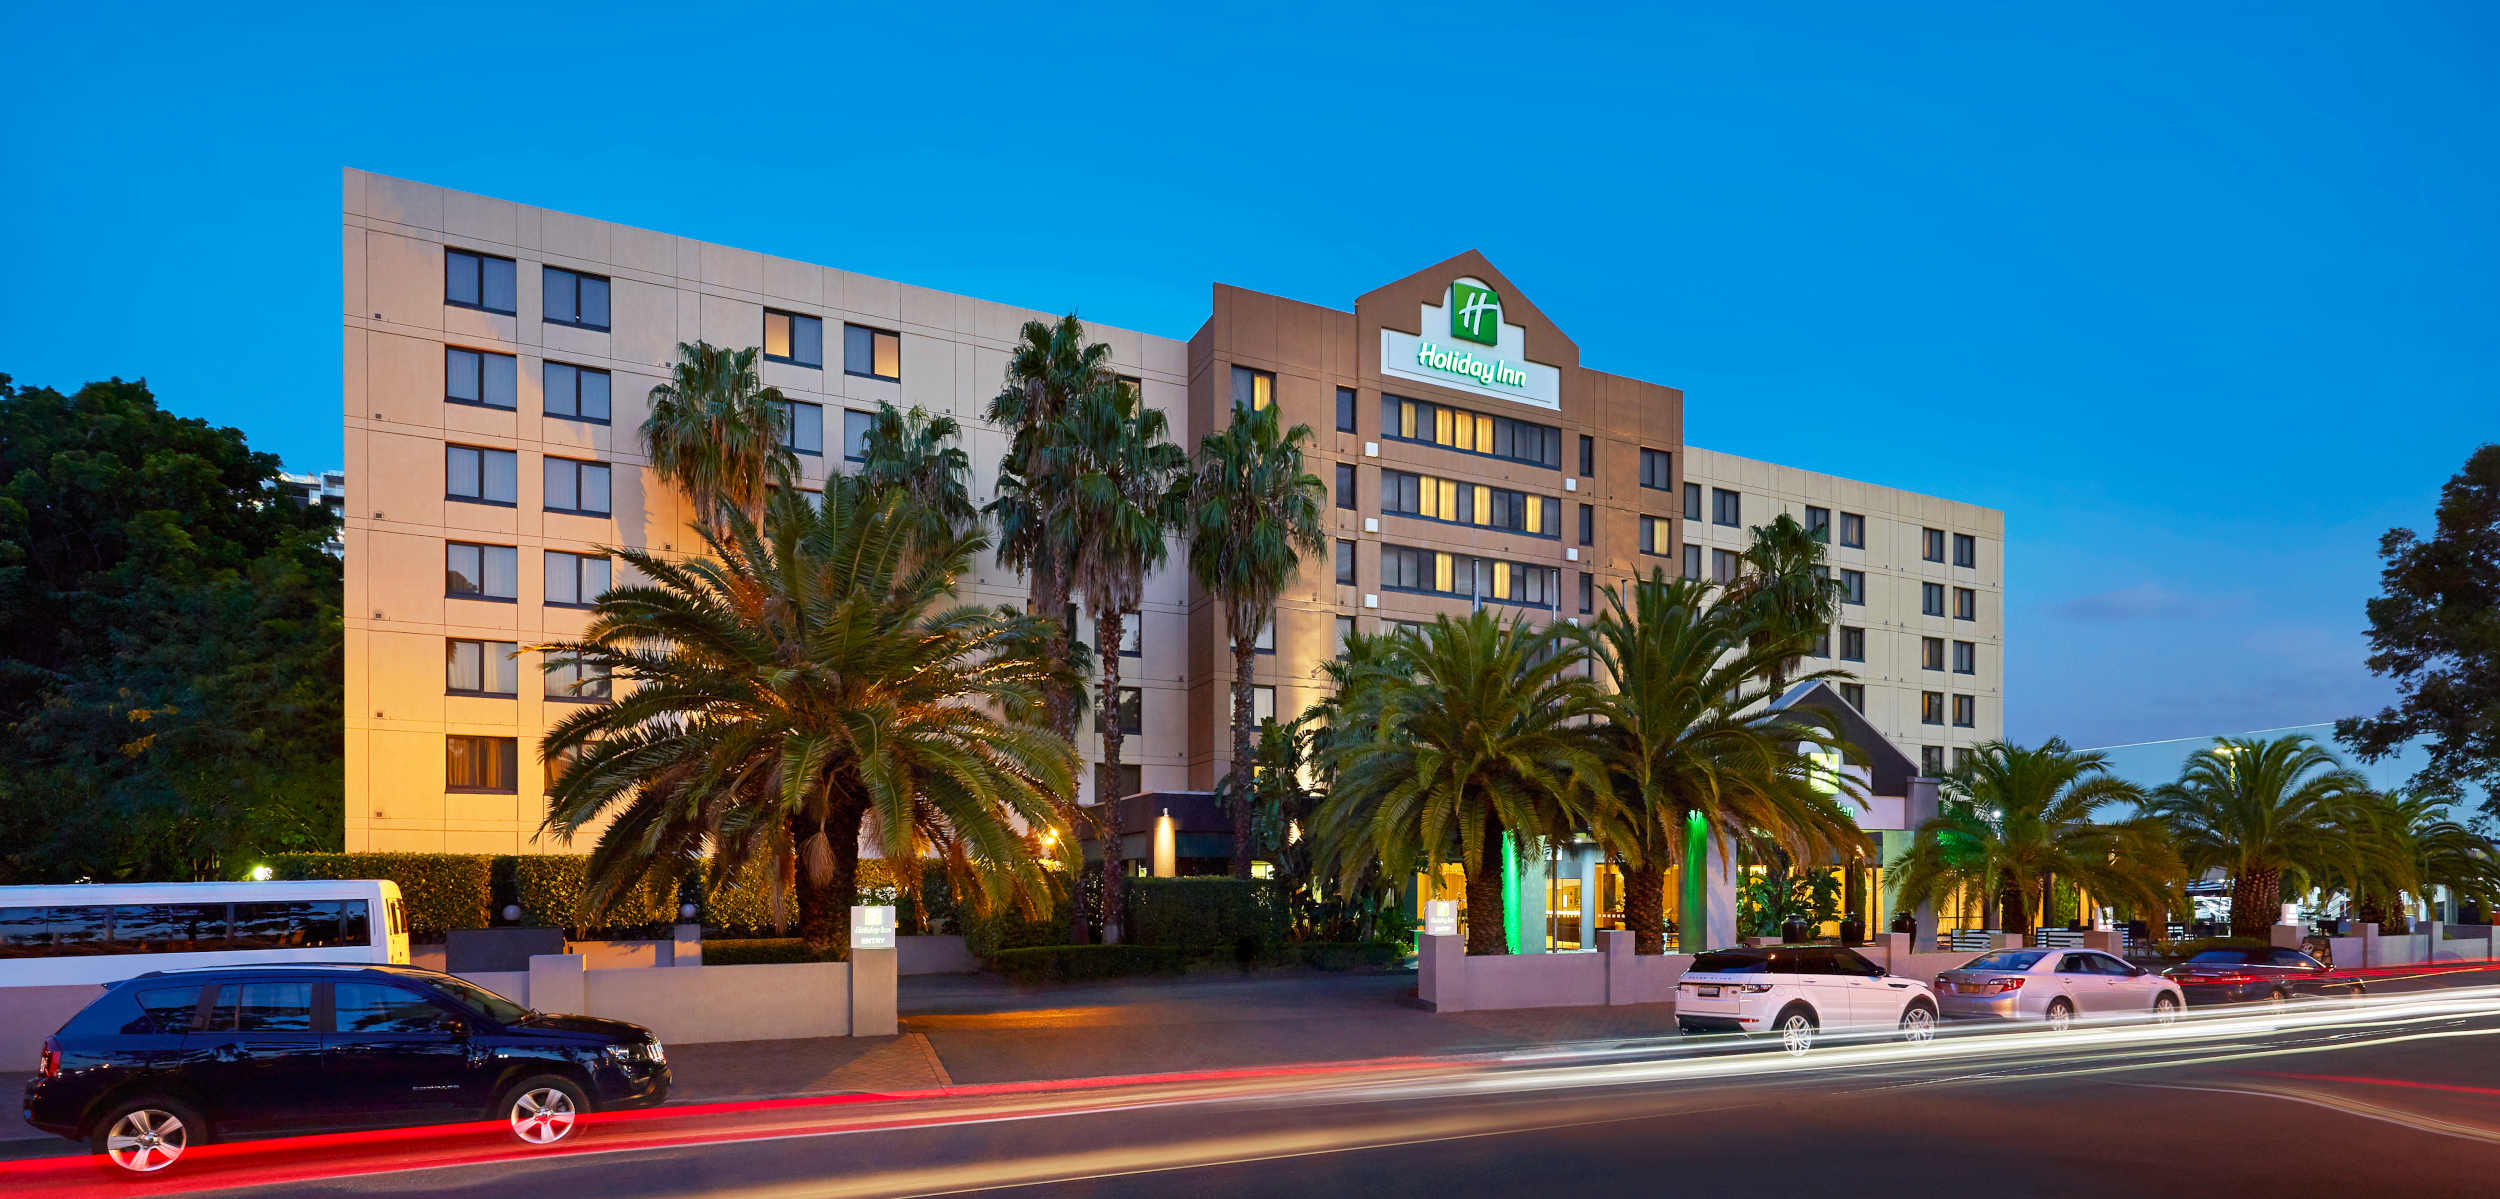 Cheap Accommodation In Parramatta Hotels Parramatta Holiday Inn Parramatta Hotel Accommodation